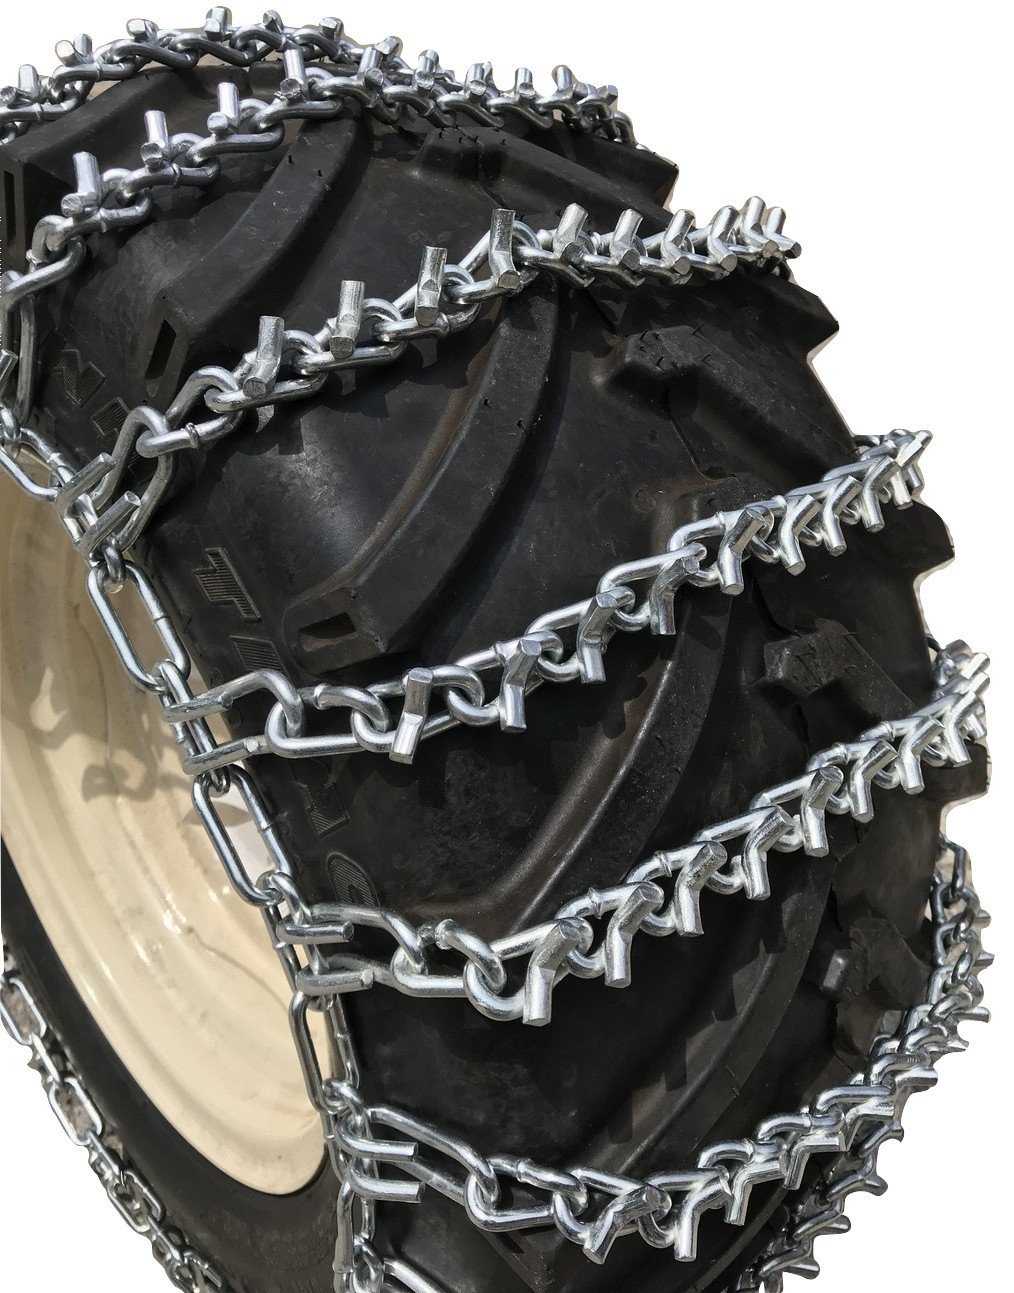 TireChain.com Heavy Duty, V Bar 2-link Lawn and Garden Tire Chains, Priced per pair. 18 X 8.50 X 8